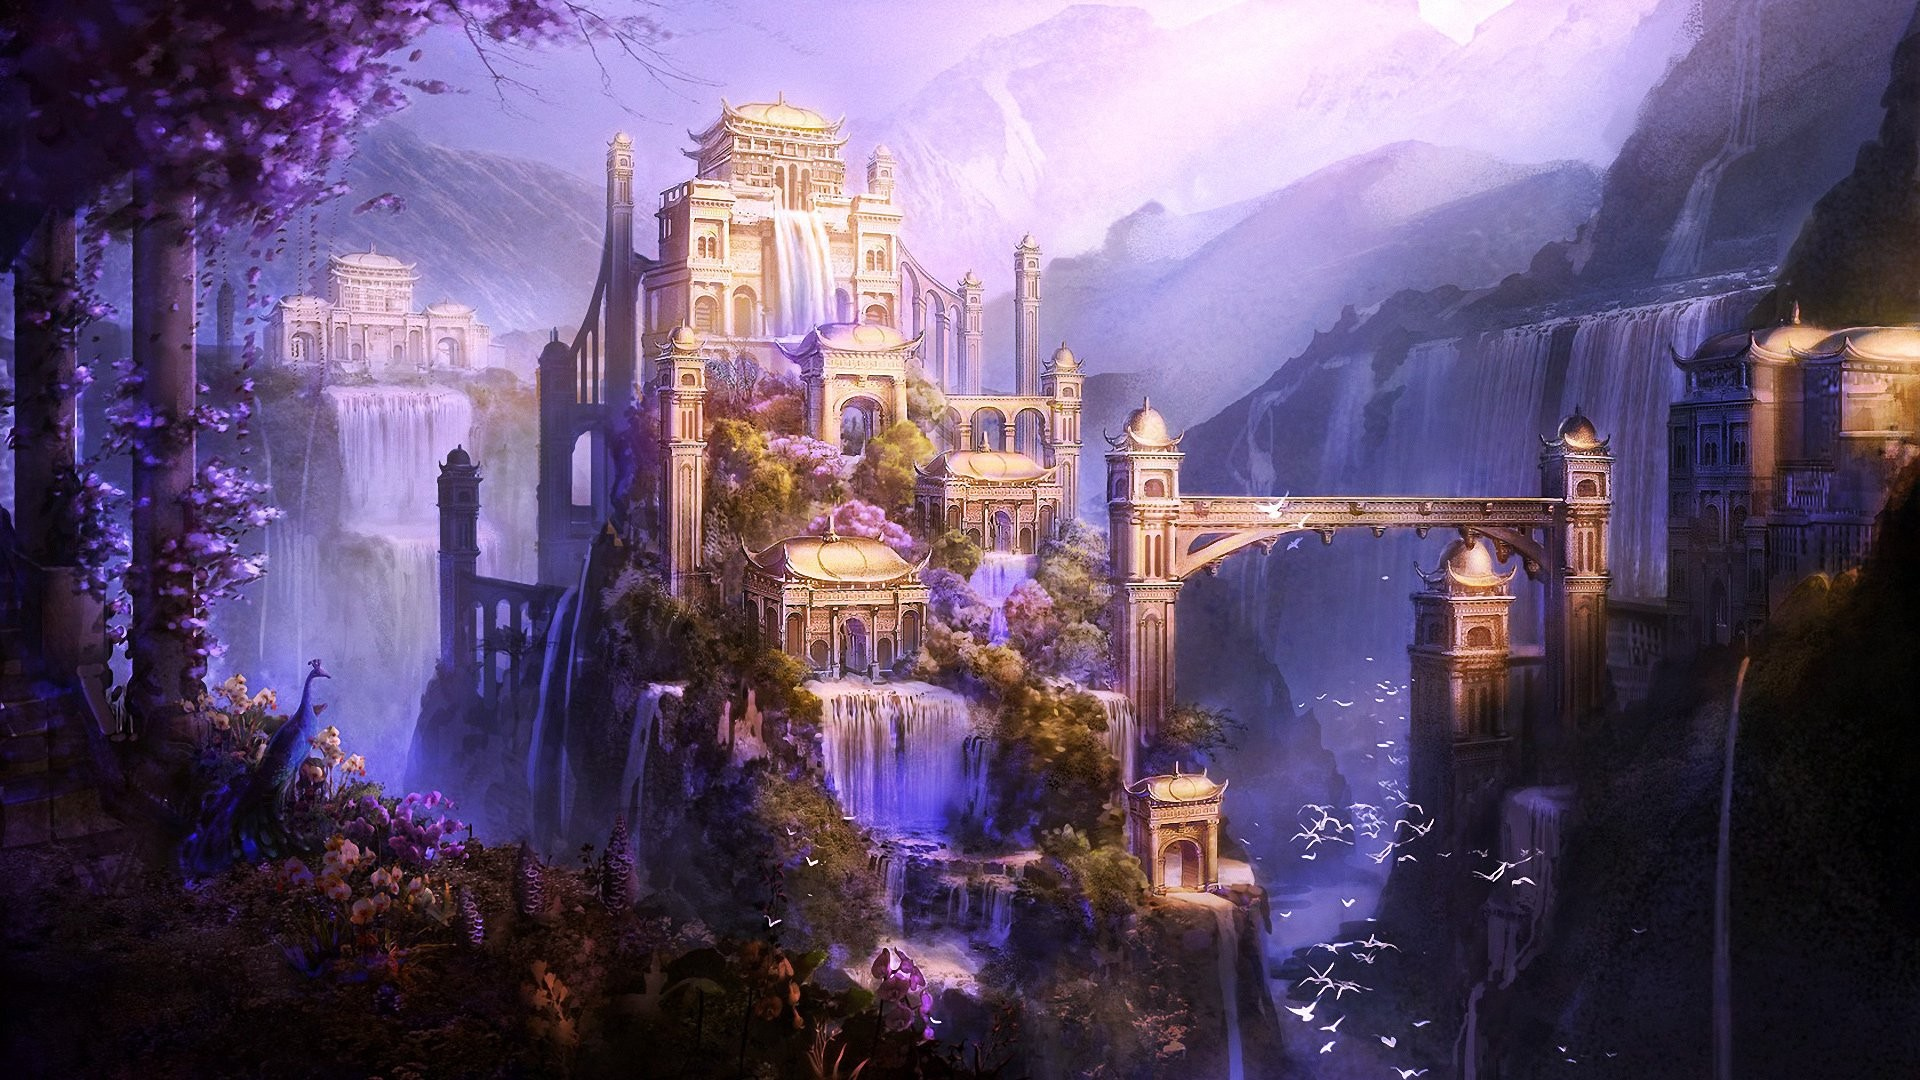 Fantasy Castle Wallpaper 1 Download Free Awesome Wallpapers For